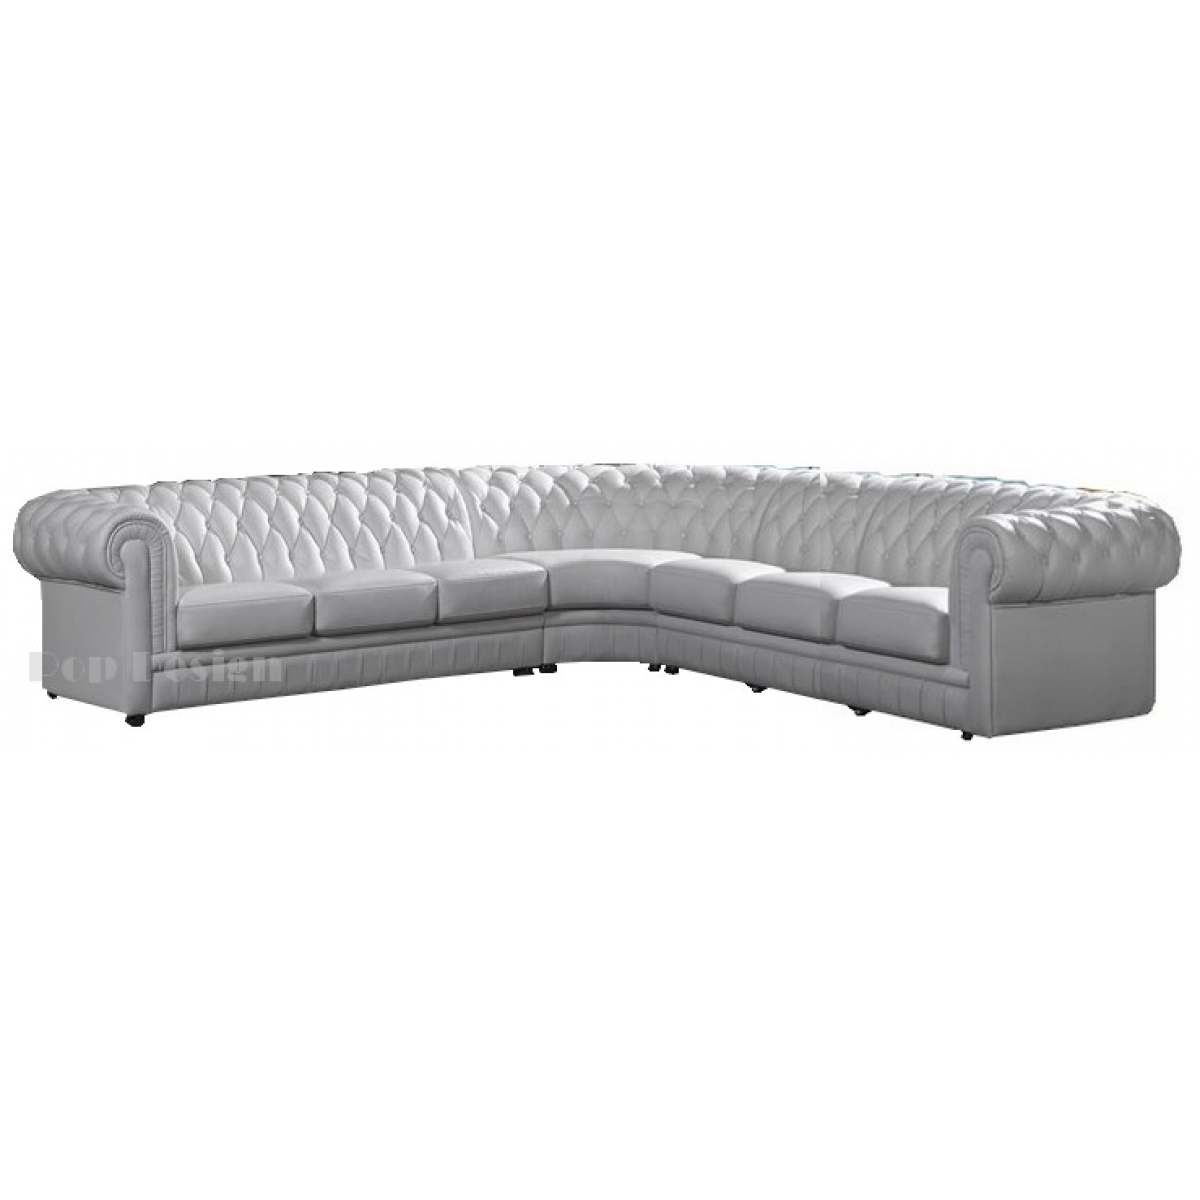 Grand canap d 39 angle en cuir pleine fleur chesterfield 7 for Canape 7 places d angle